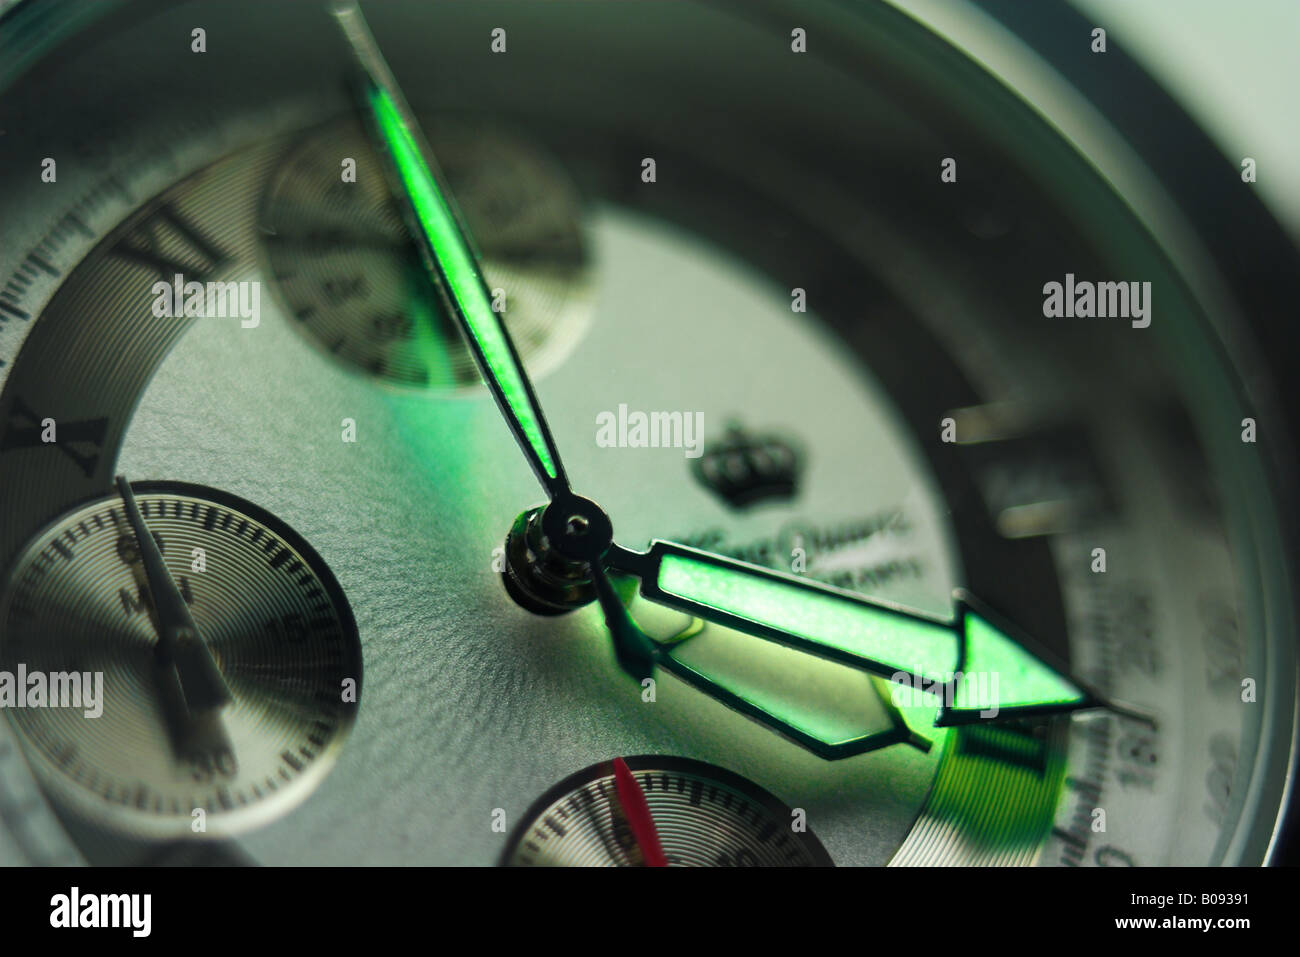 Wristwatch displaying 4:20:00 Stock Photo